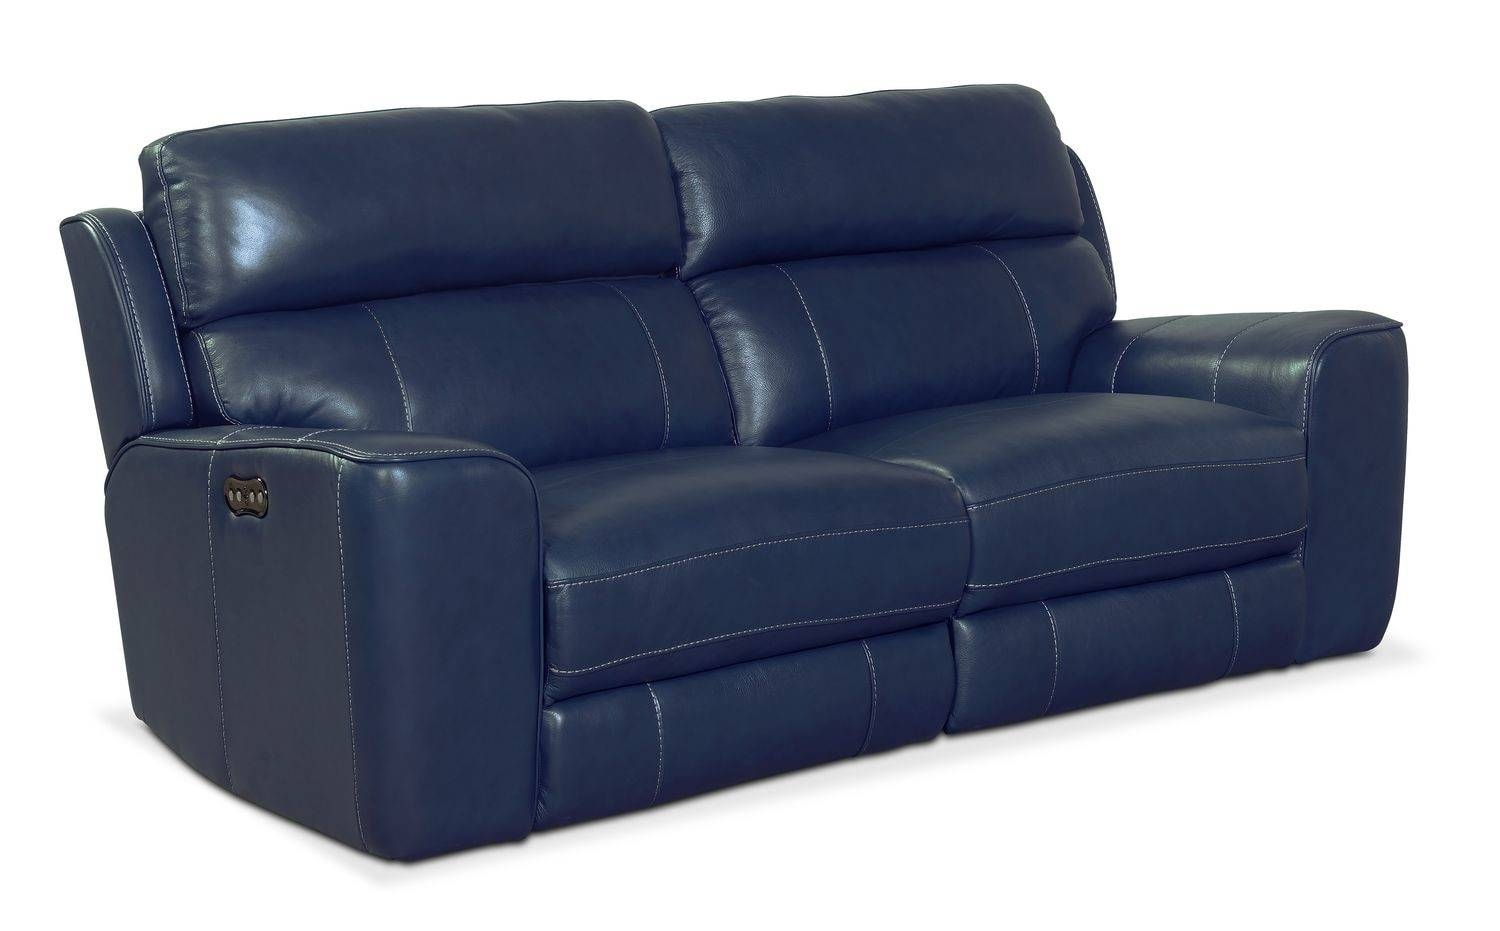 Newport 2-Piece Power Reclining Sofa - Blue | Value City Furniture with regard to Newport Sofas (Image 13 of 30)